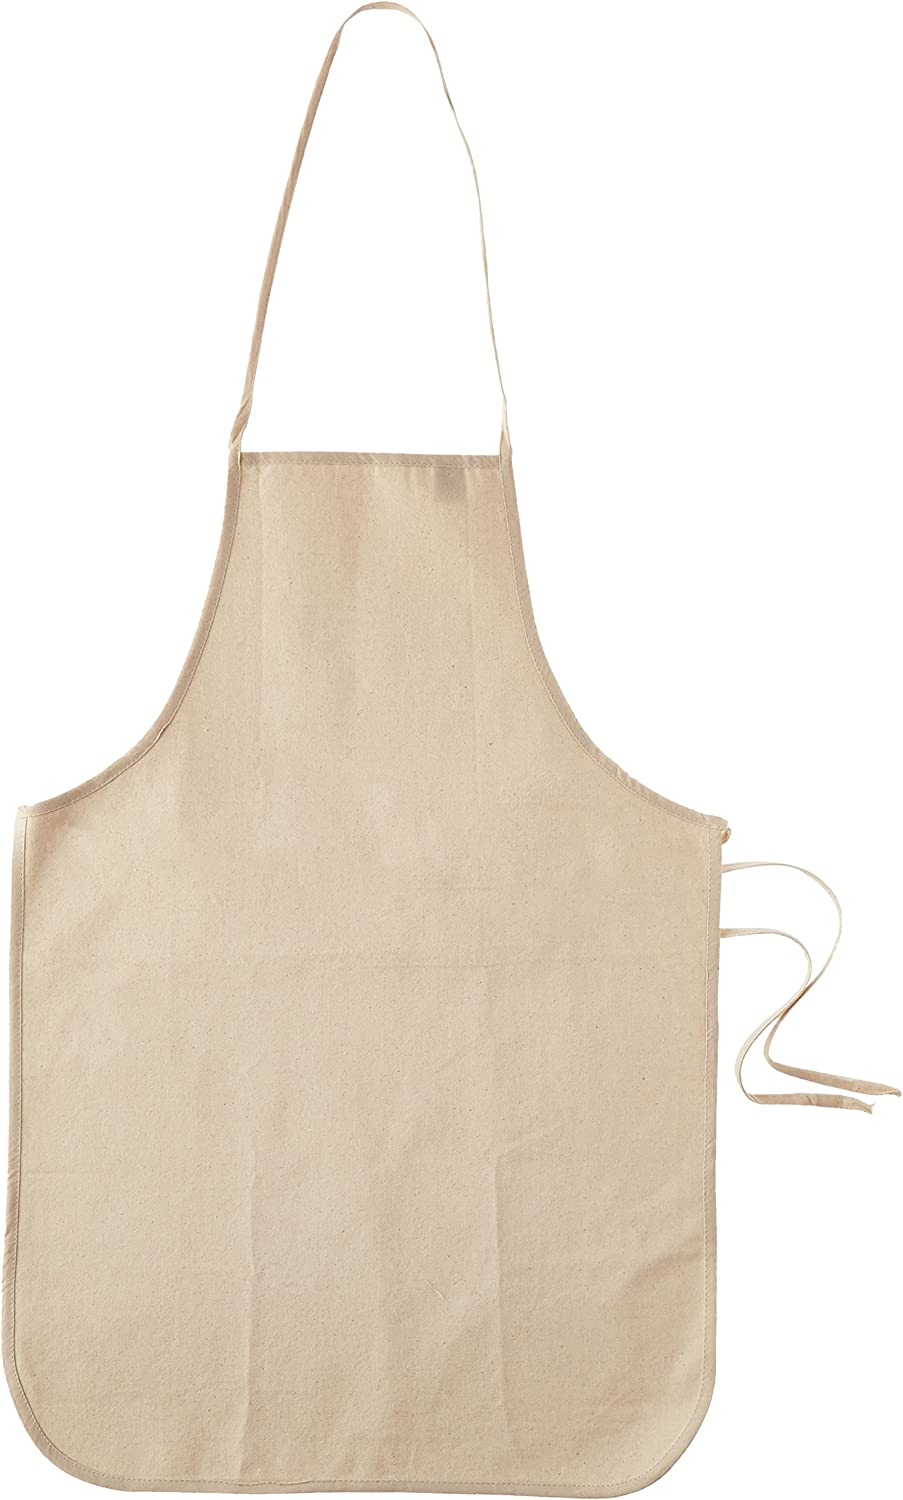 Mark Richards Wear'm Cotton Adult Apron, 19 by 28-Inch, Natural: Arts, Crafts & Sewing